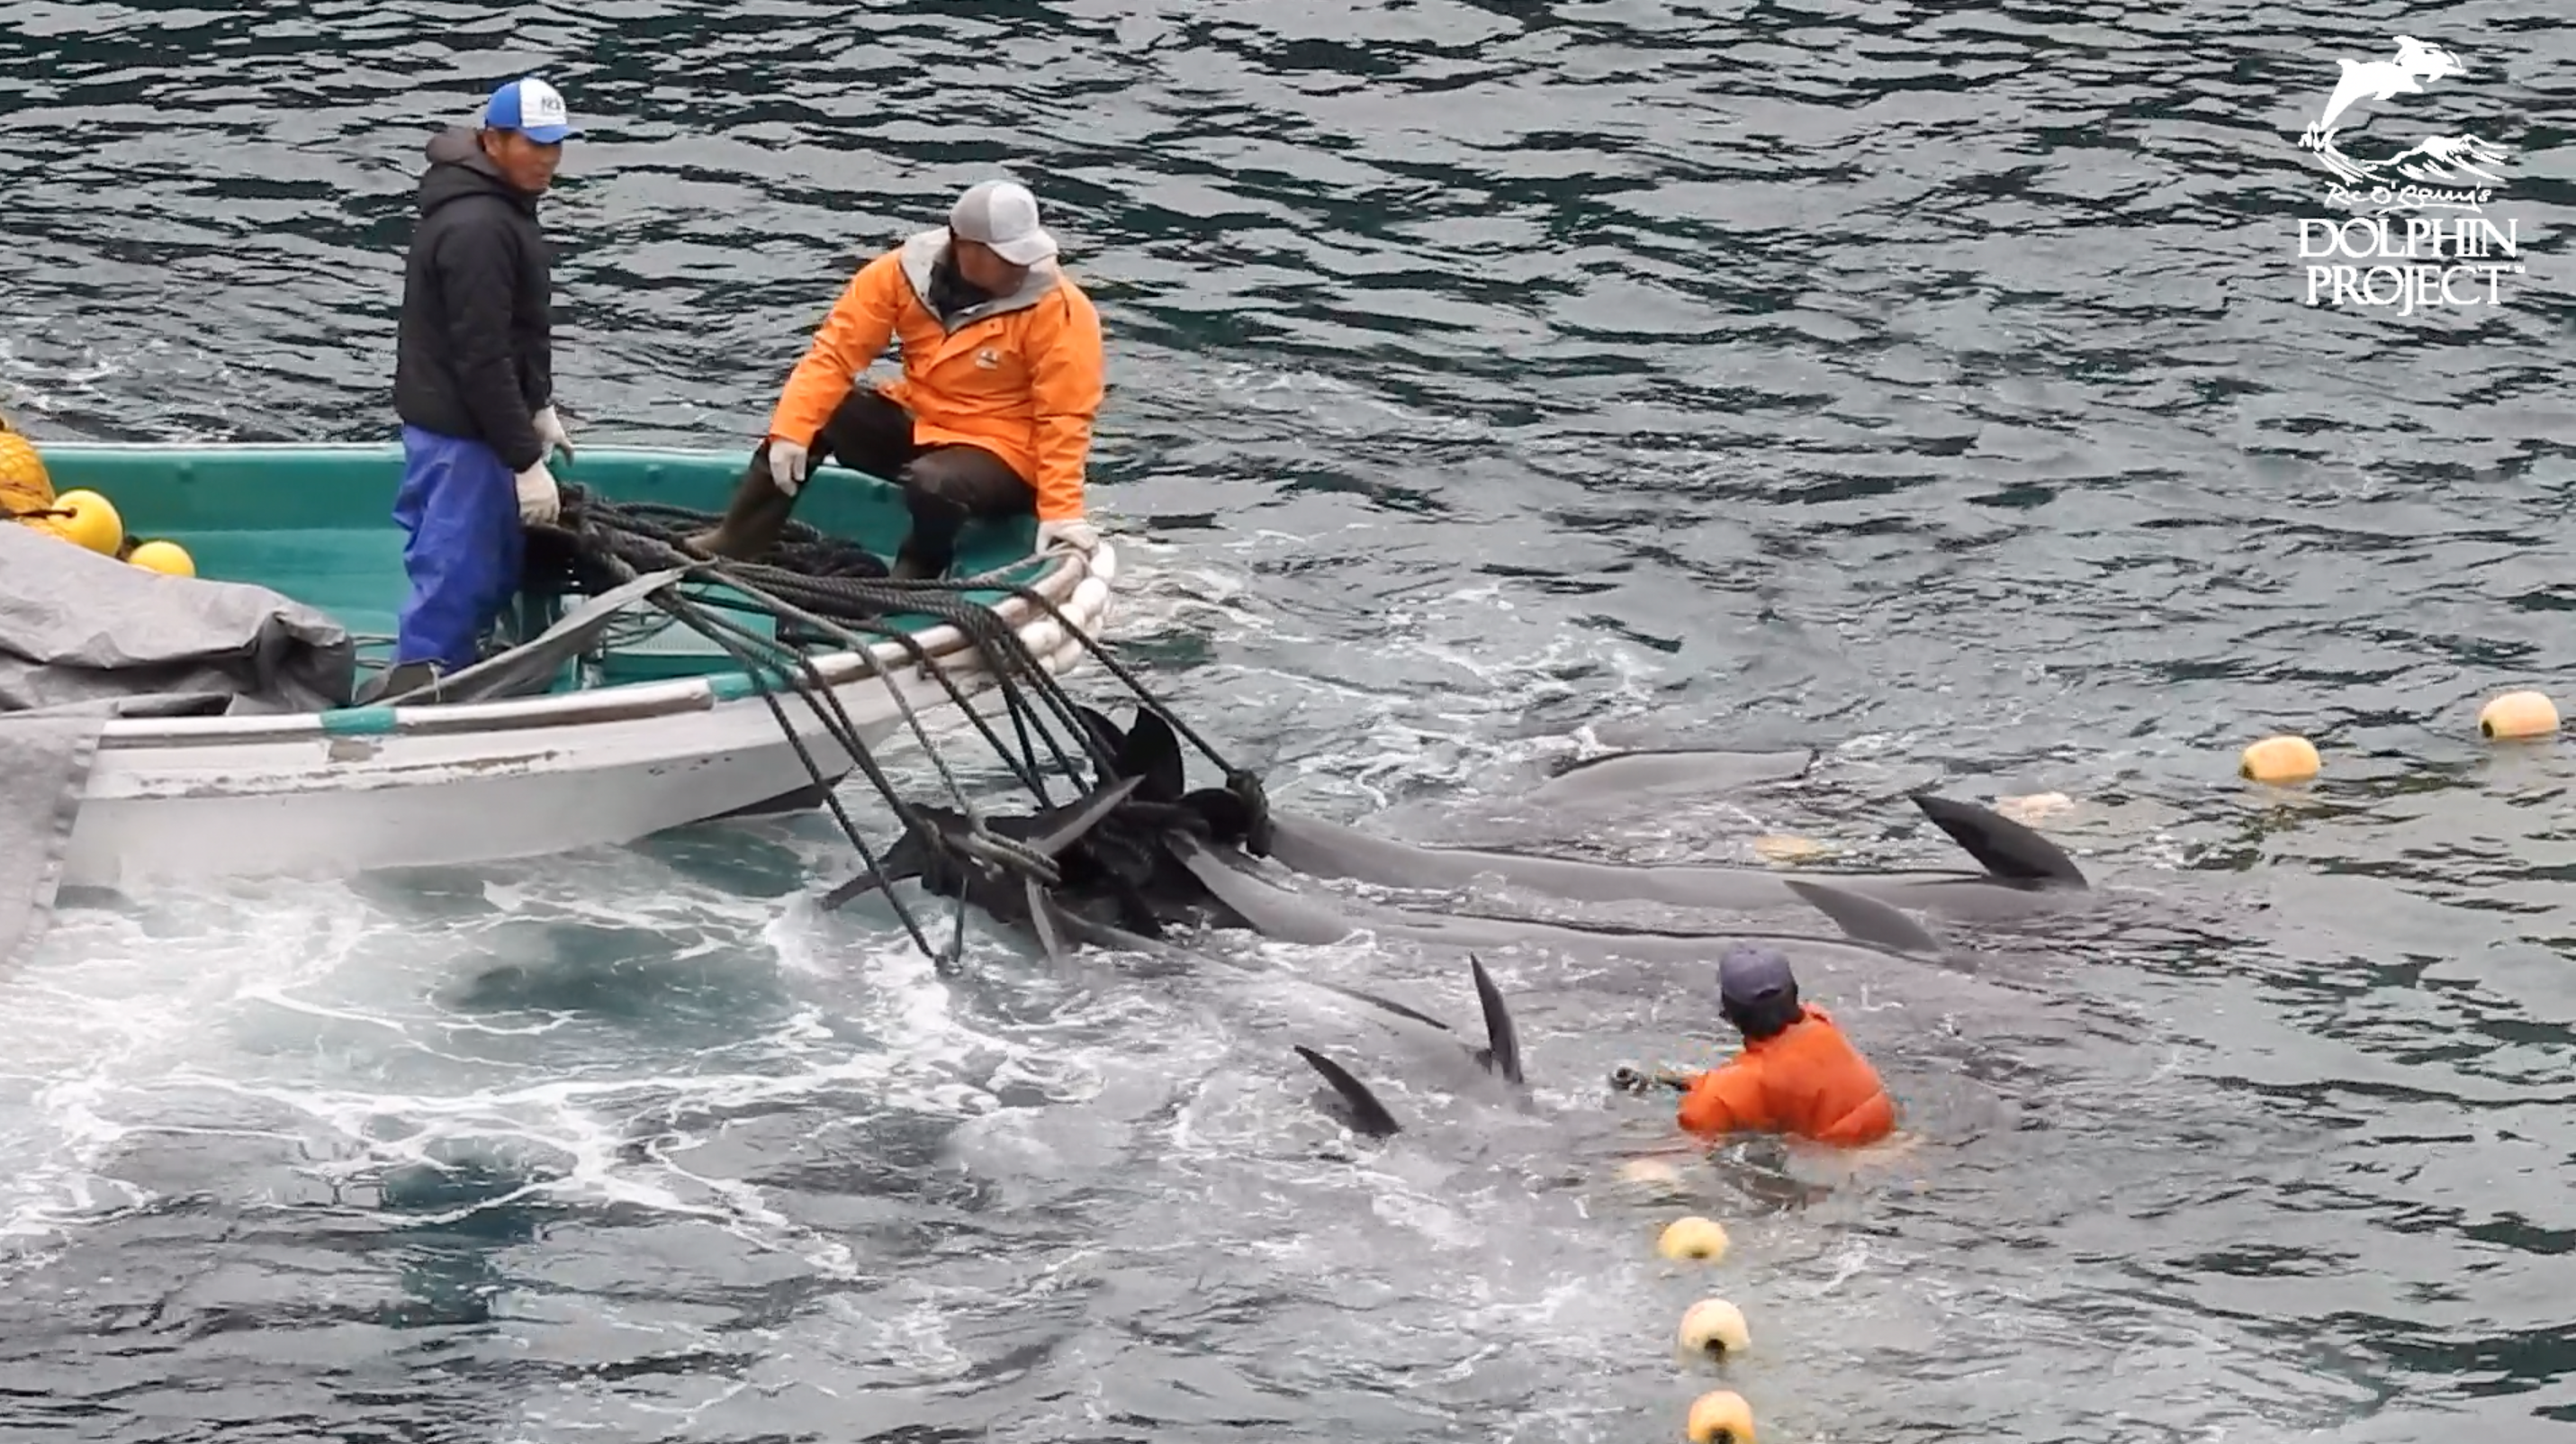 Melon-headed whales are dragged to the butcher's house after slaughter.